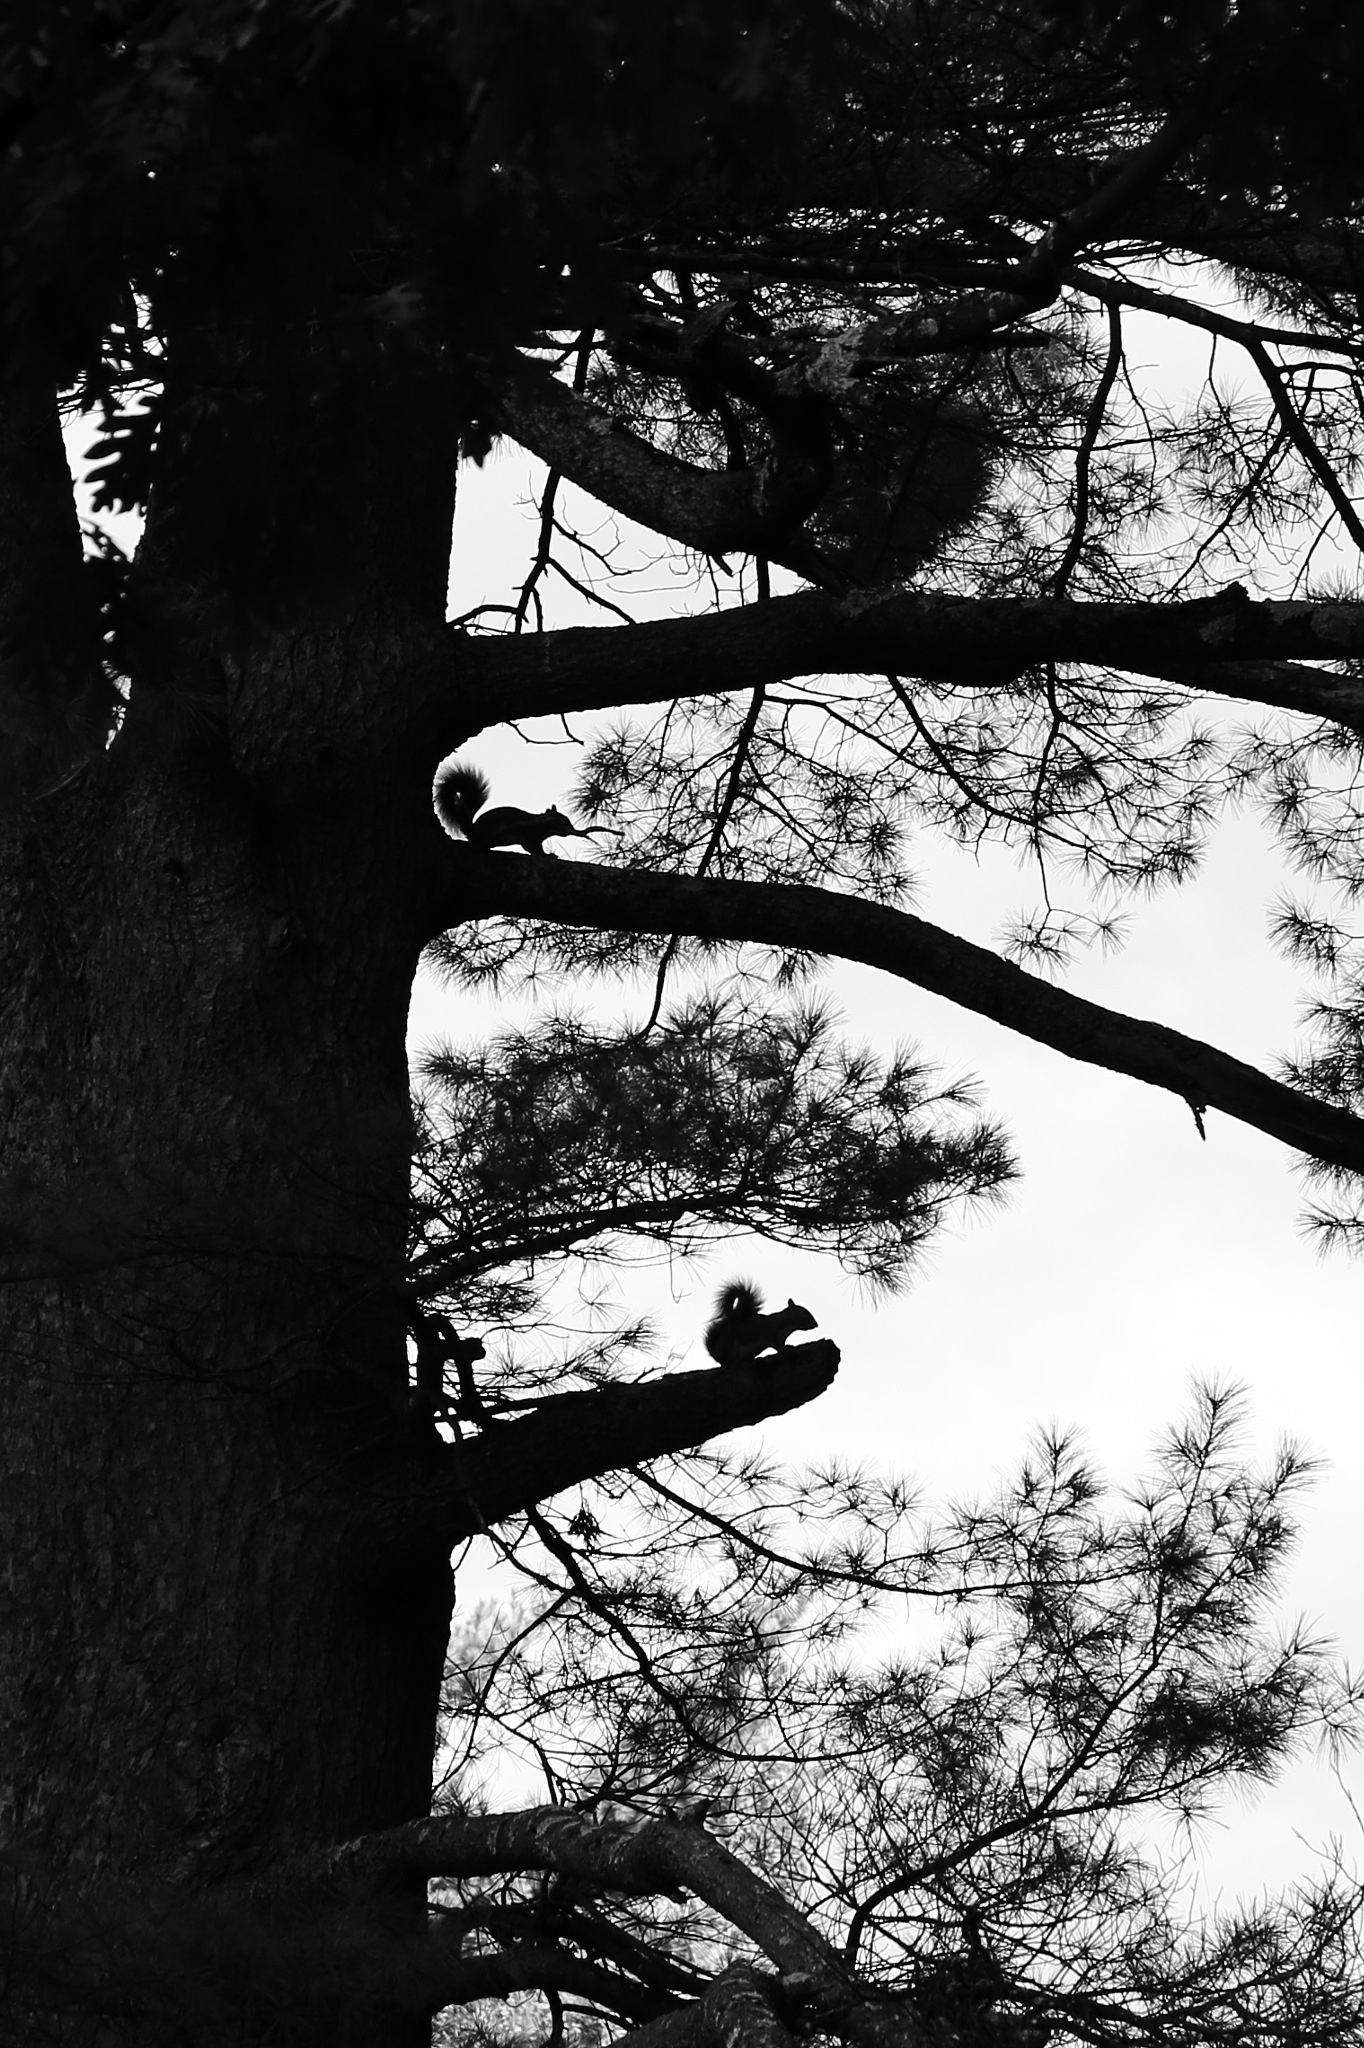 Out on a limb by Holly Schreckengost Greene